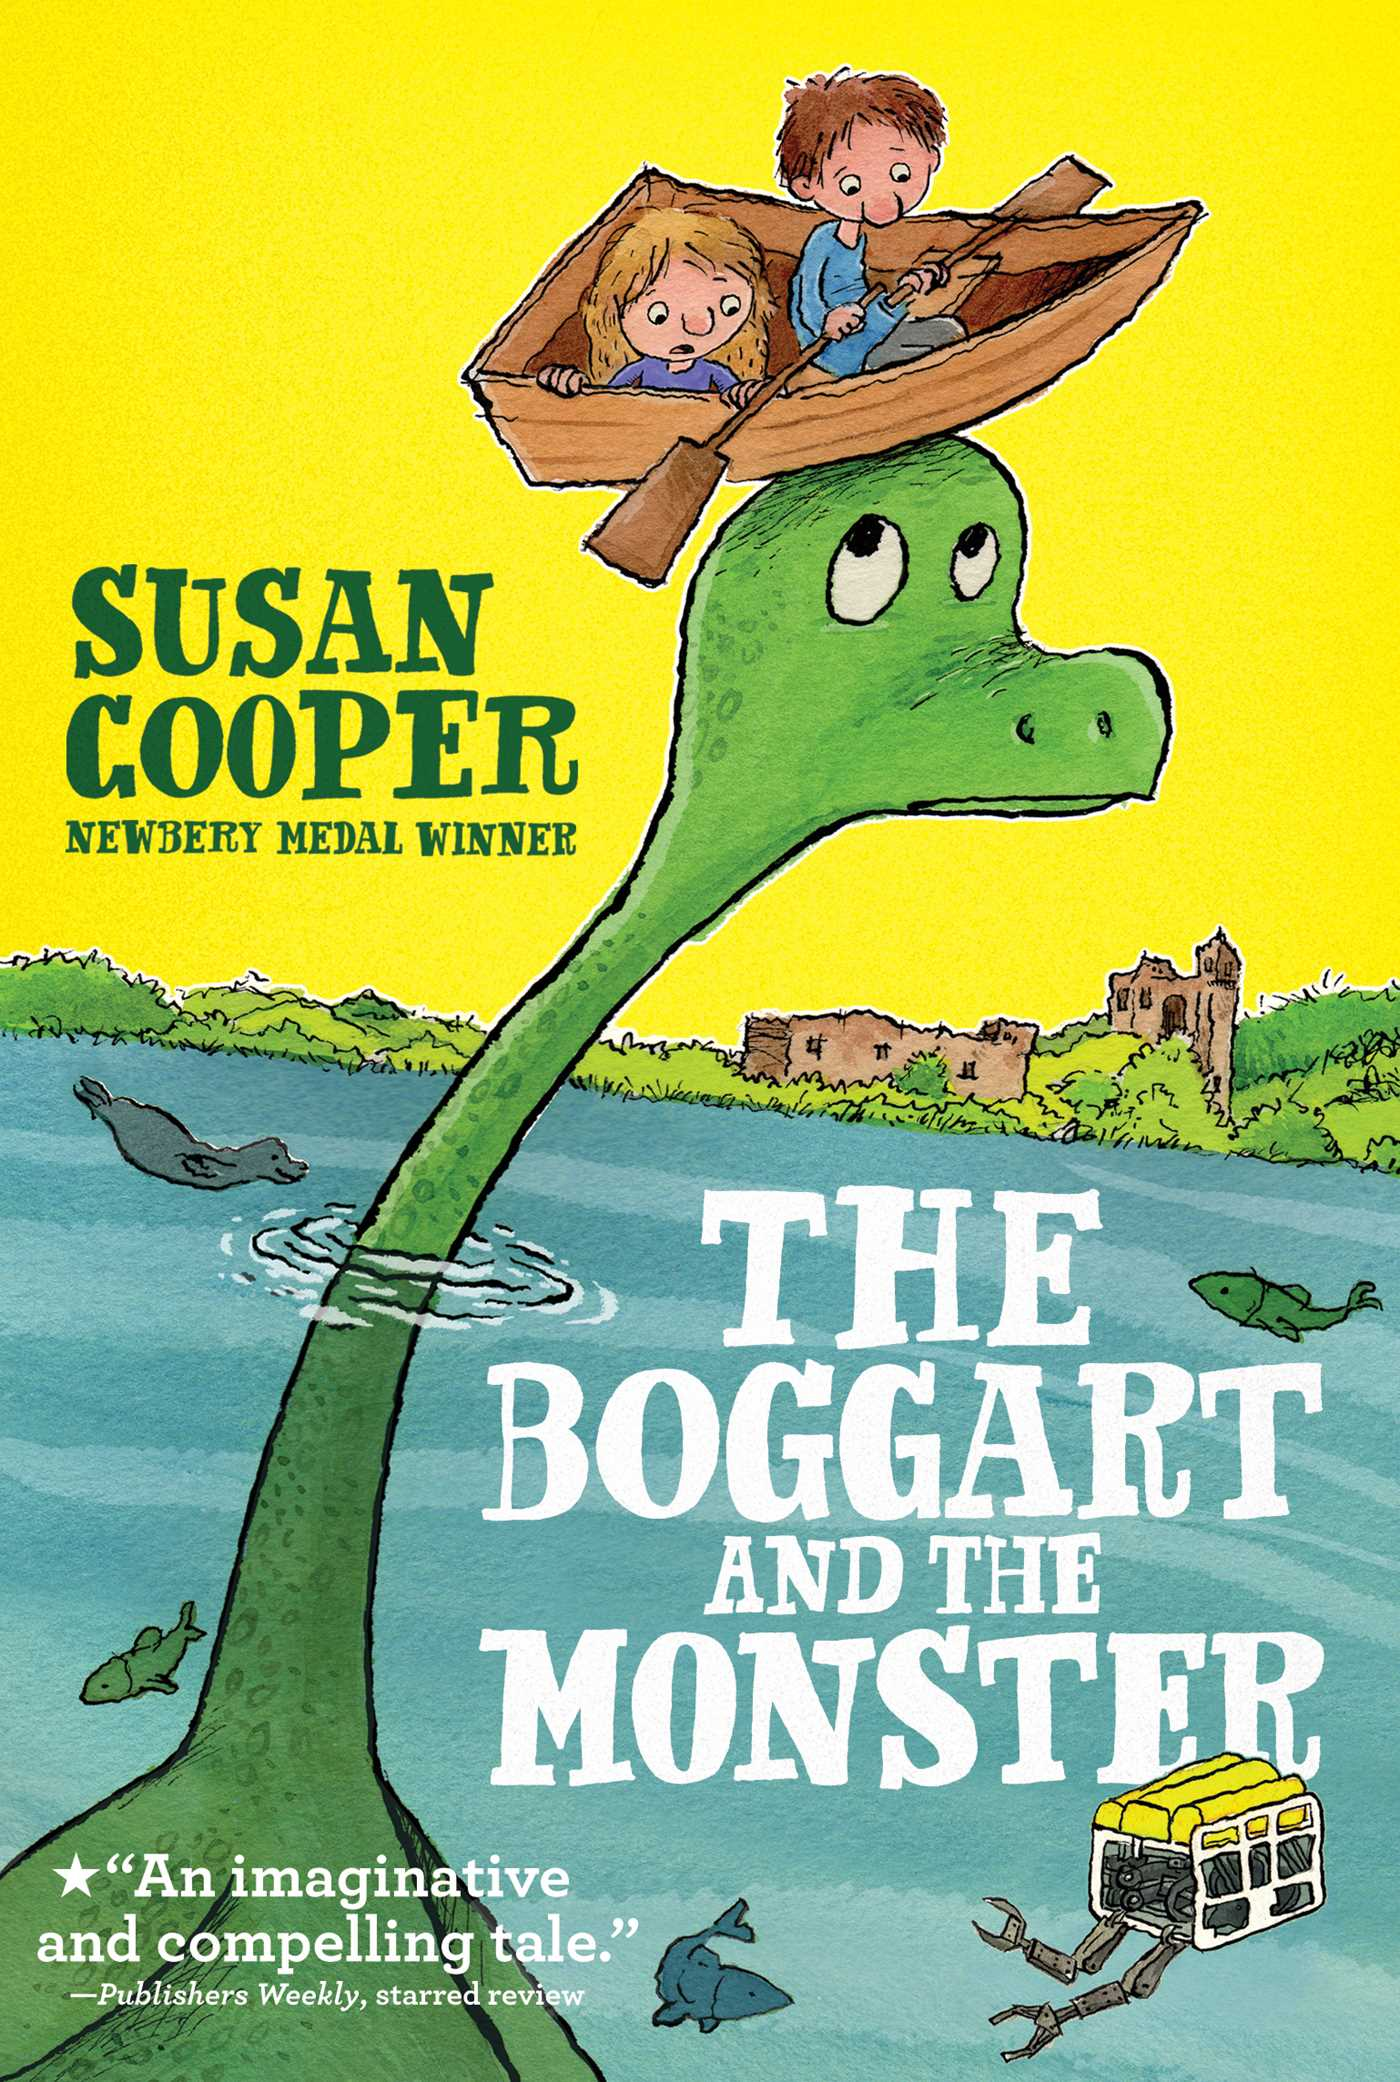 an overview of the novel the boggart by susan cooper on the concept of inheritence Traveling in scotland with kids but he escapes and hikes back across scotland to reclaim his inheritance (chapter book) the boggart susan cooper.